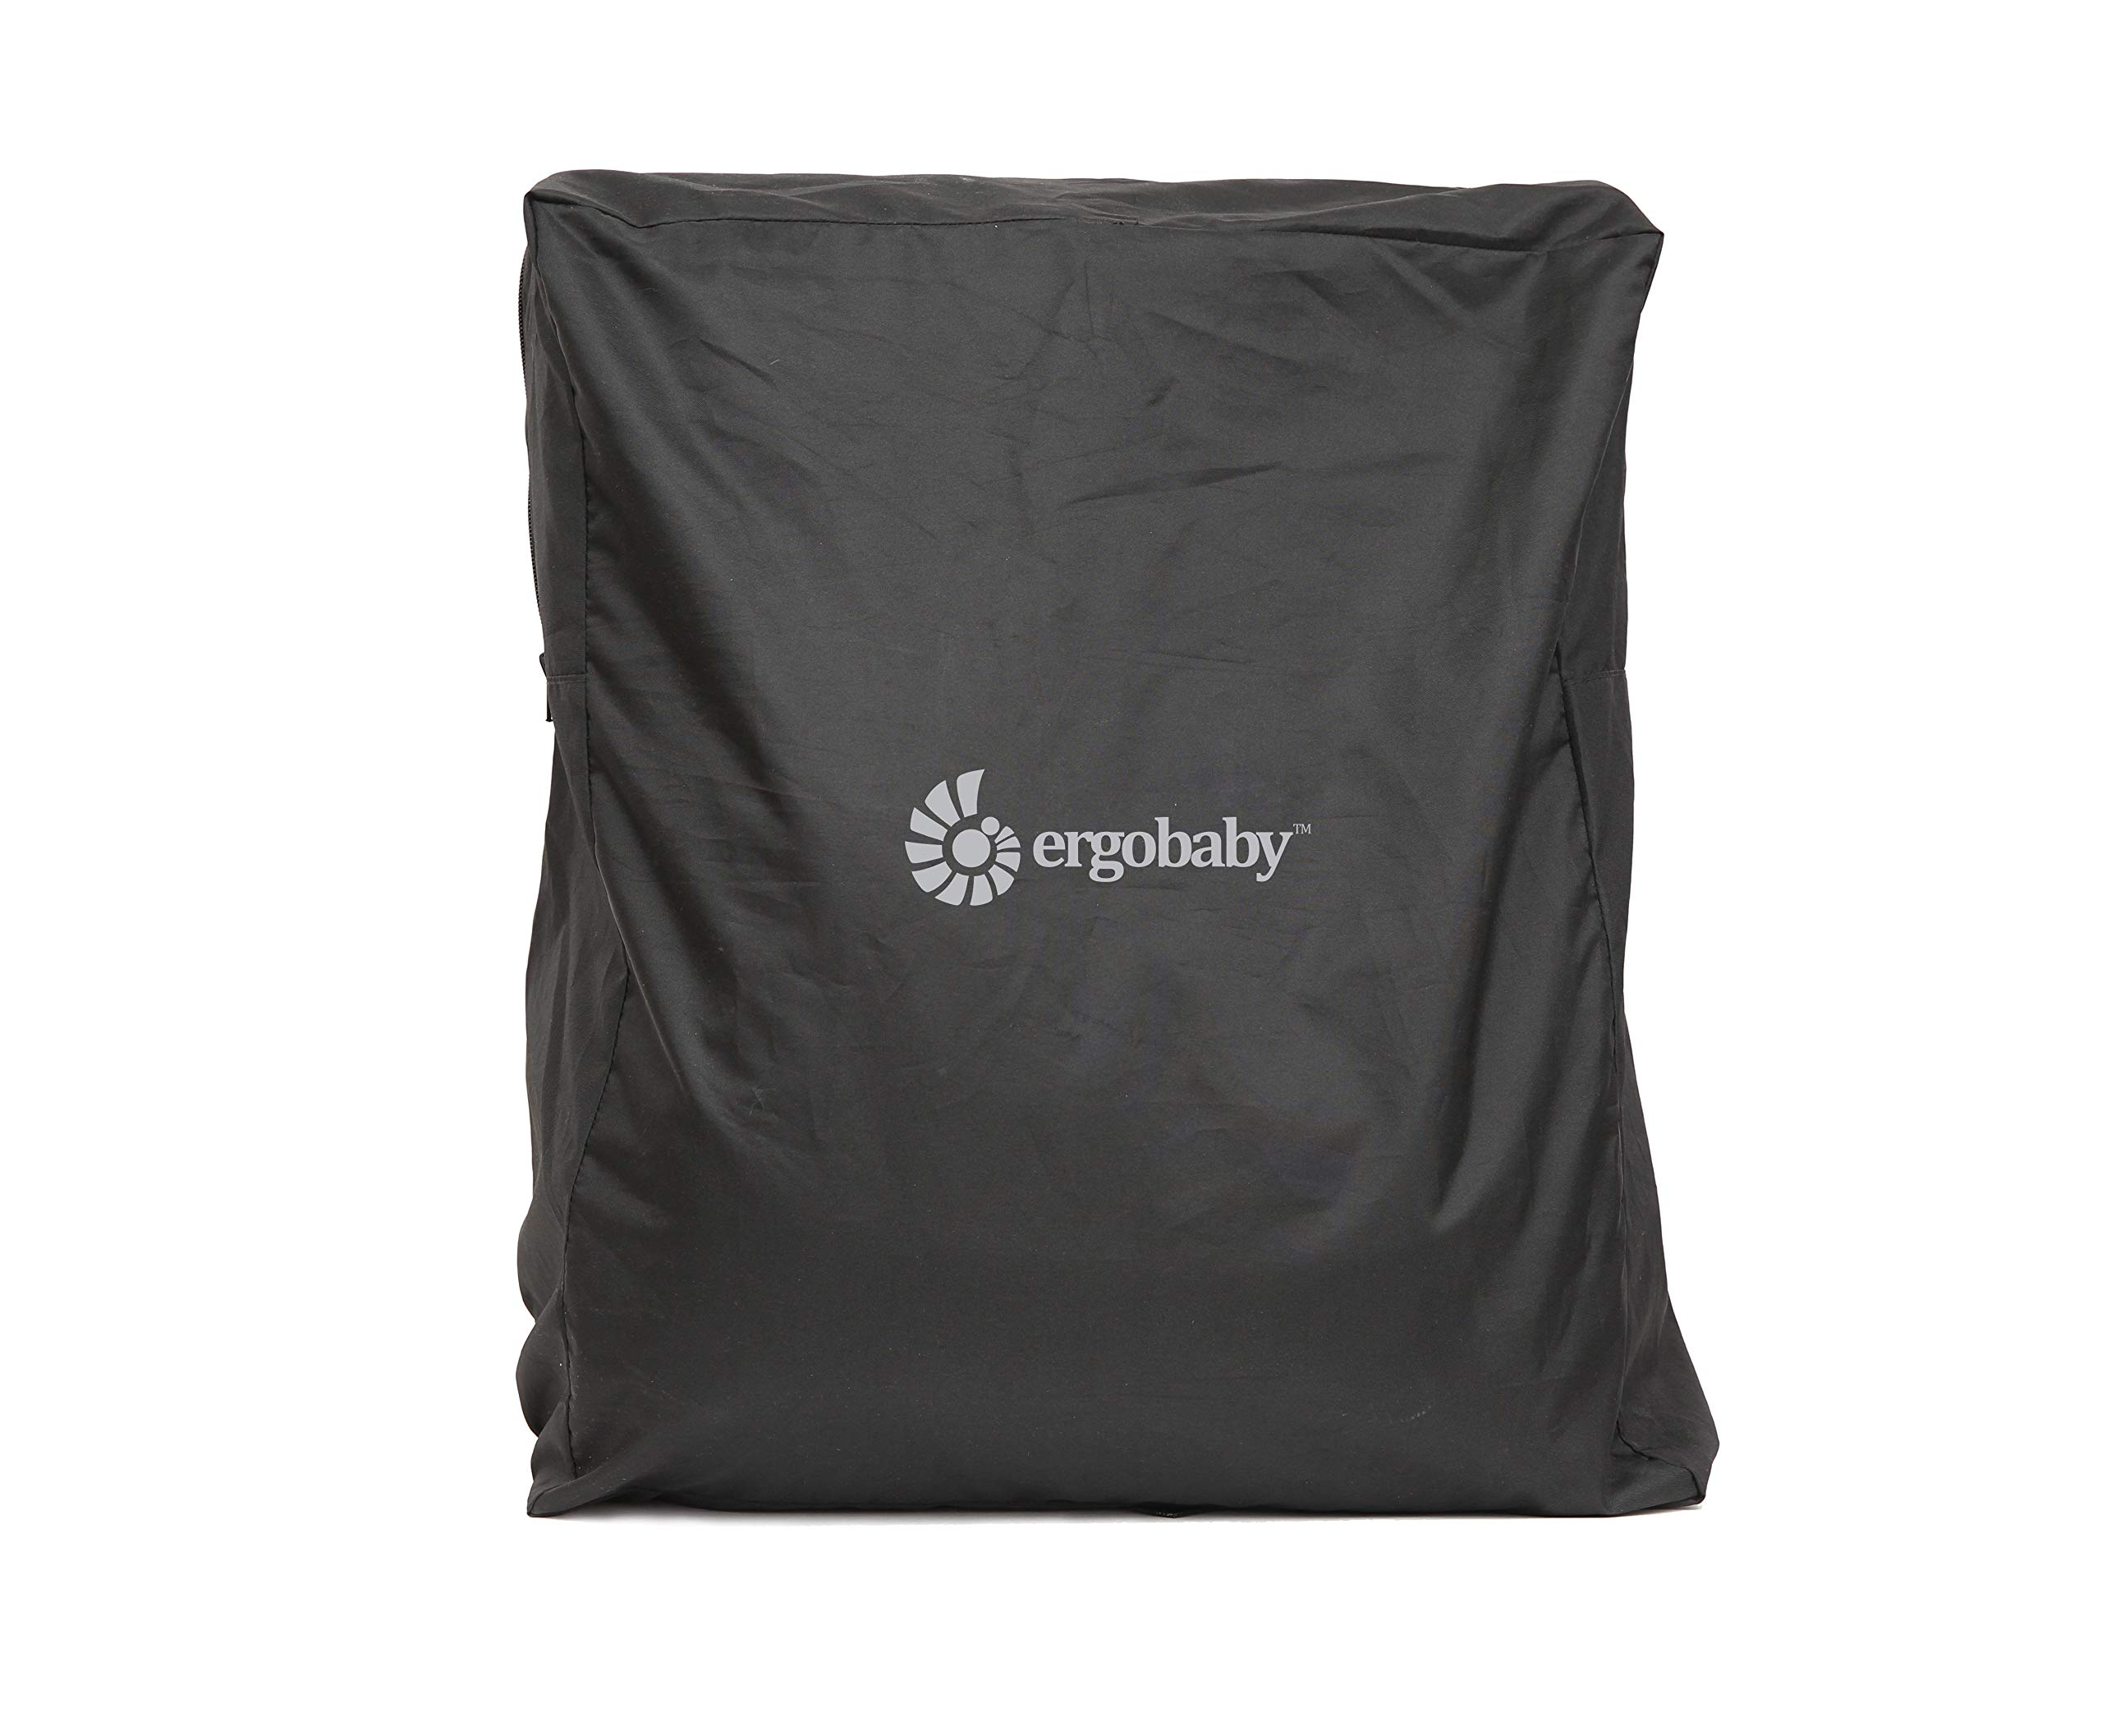 Ergobaby Metro Compact City Stroller Accessories, Backpack-Style Carry Bag by Ergobaby